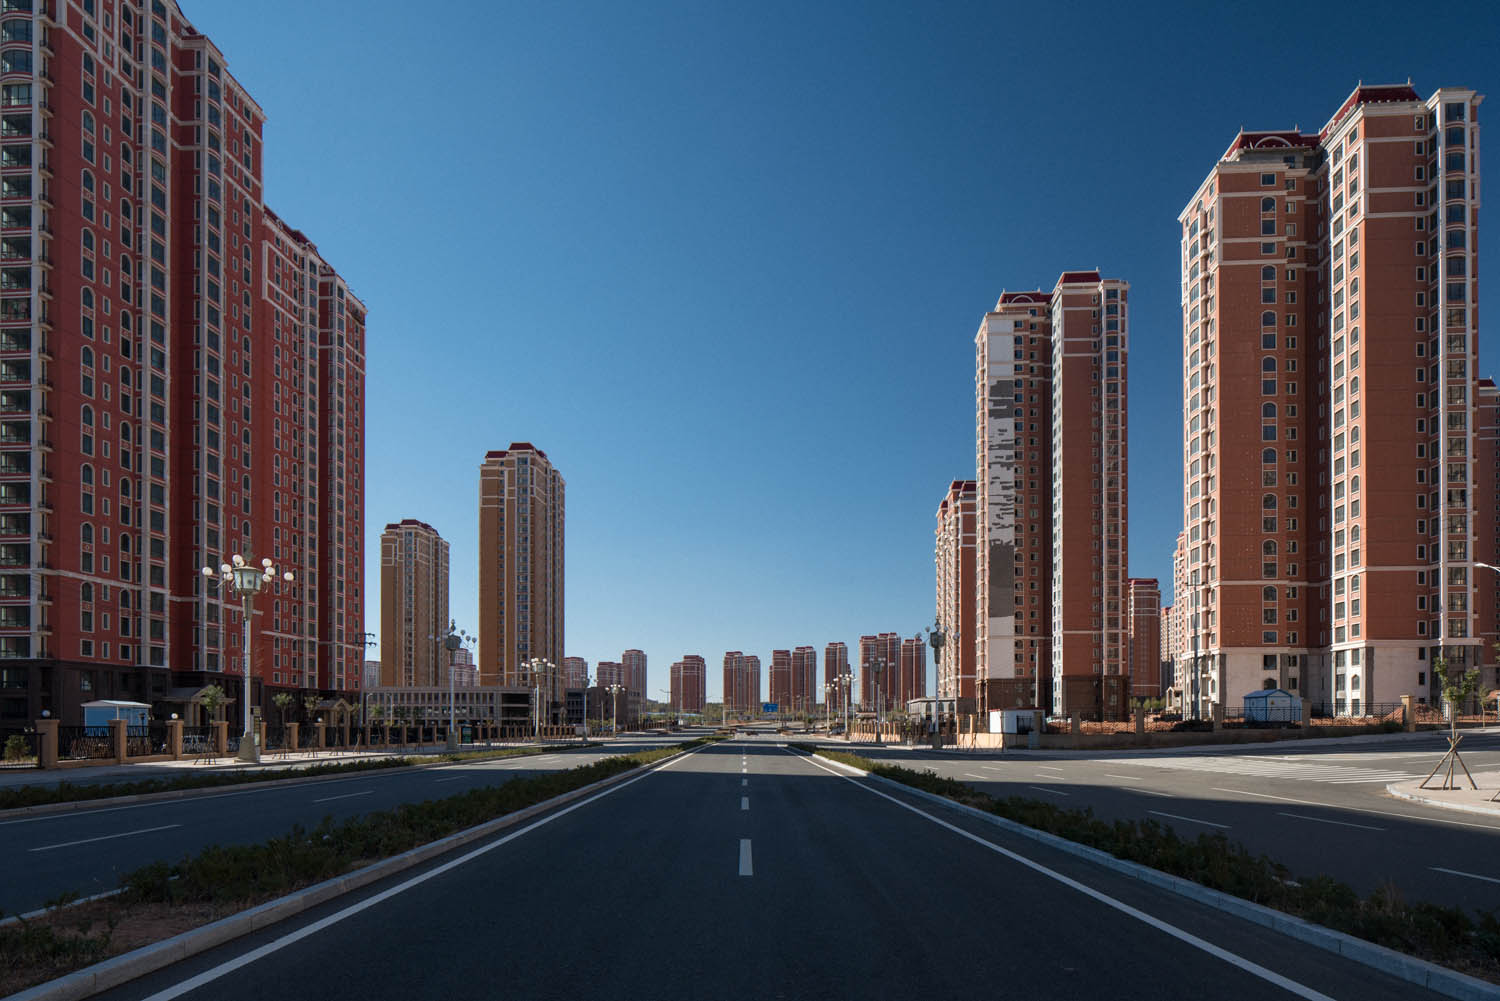 Ordos-China-Architecture-6240.jpg